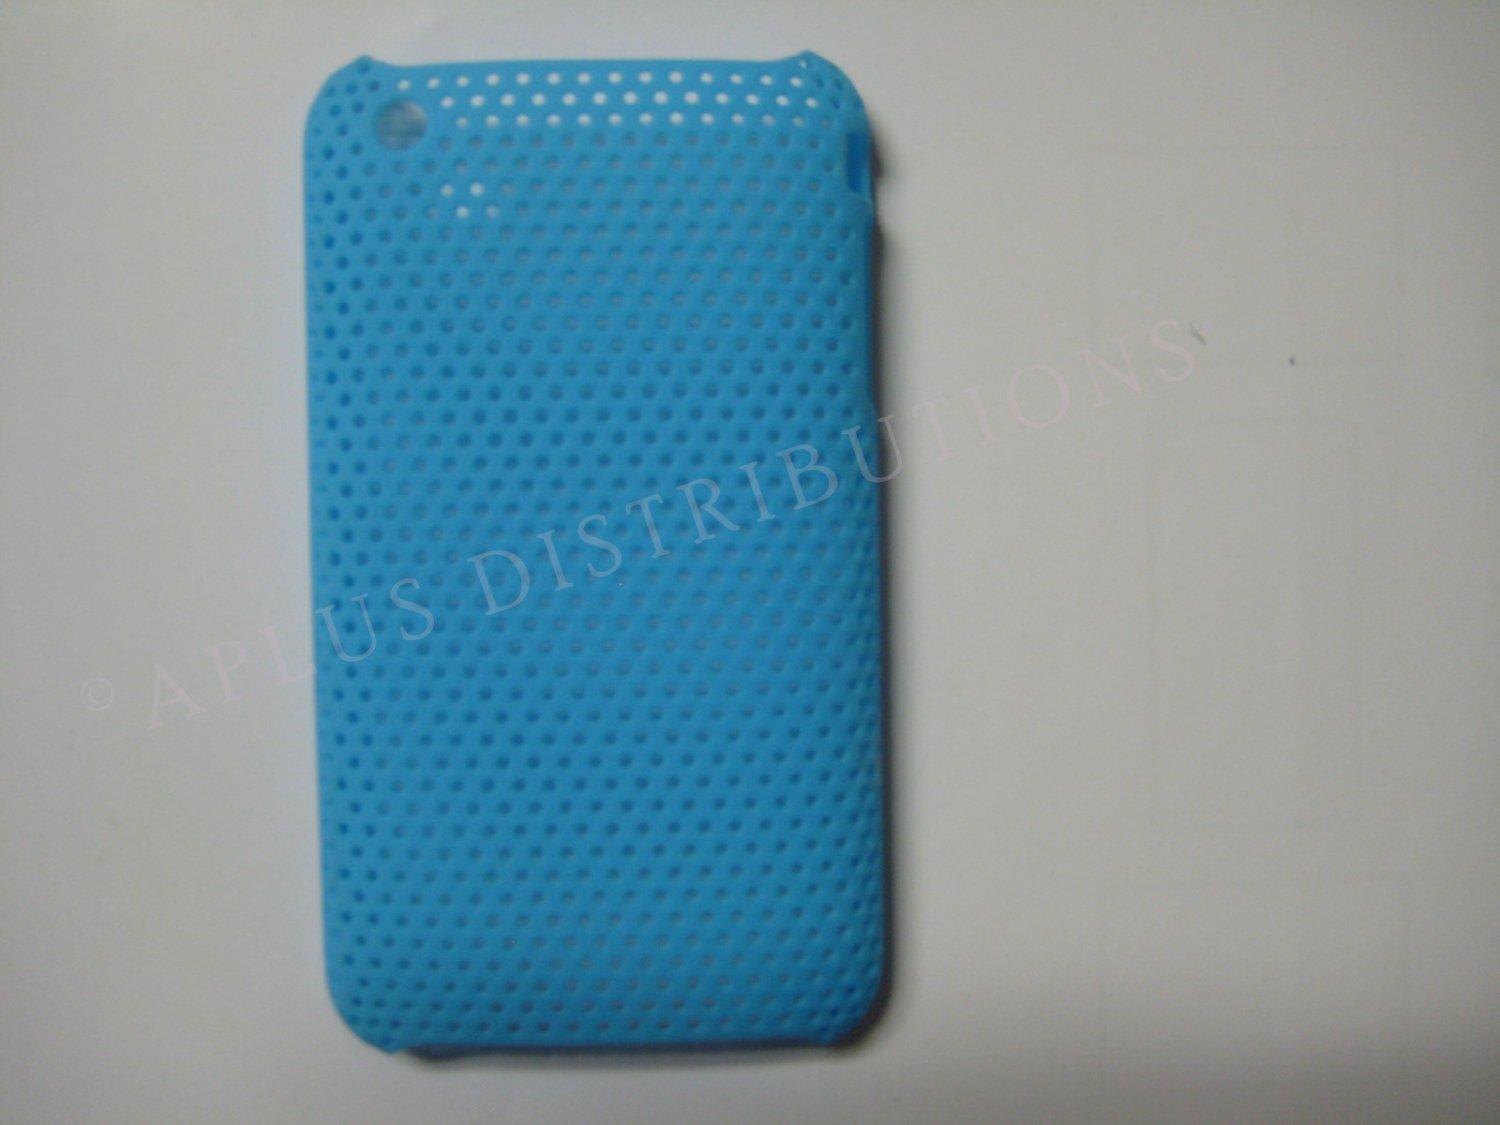 New Light Blue Lattice Pattern Design Hard Protective Cover For iPhone 3G 3GS - (0017)